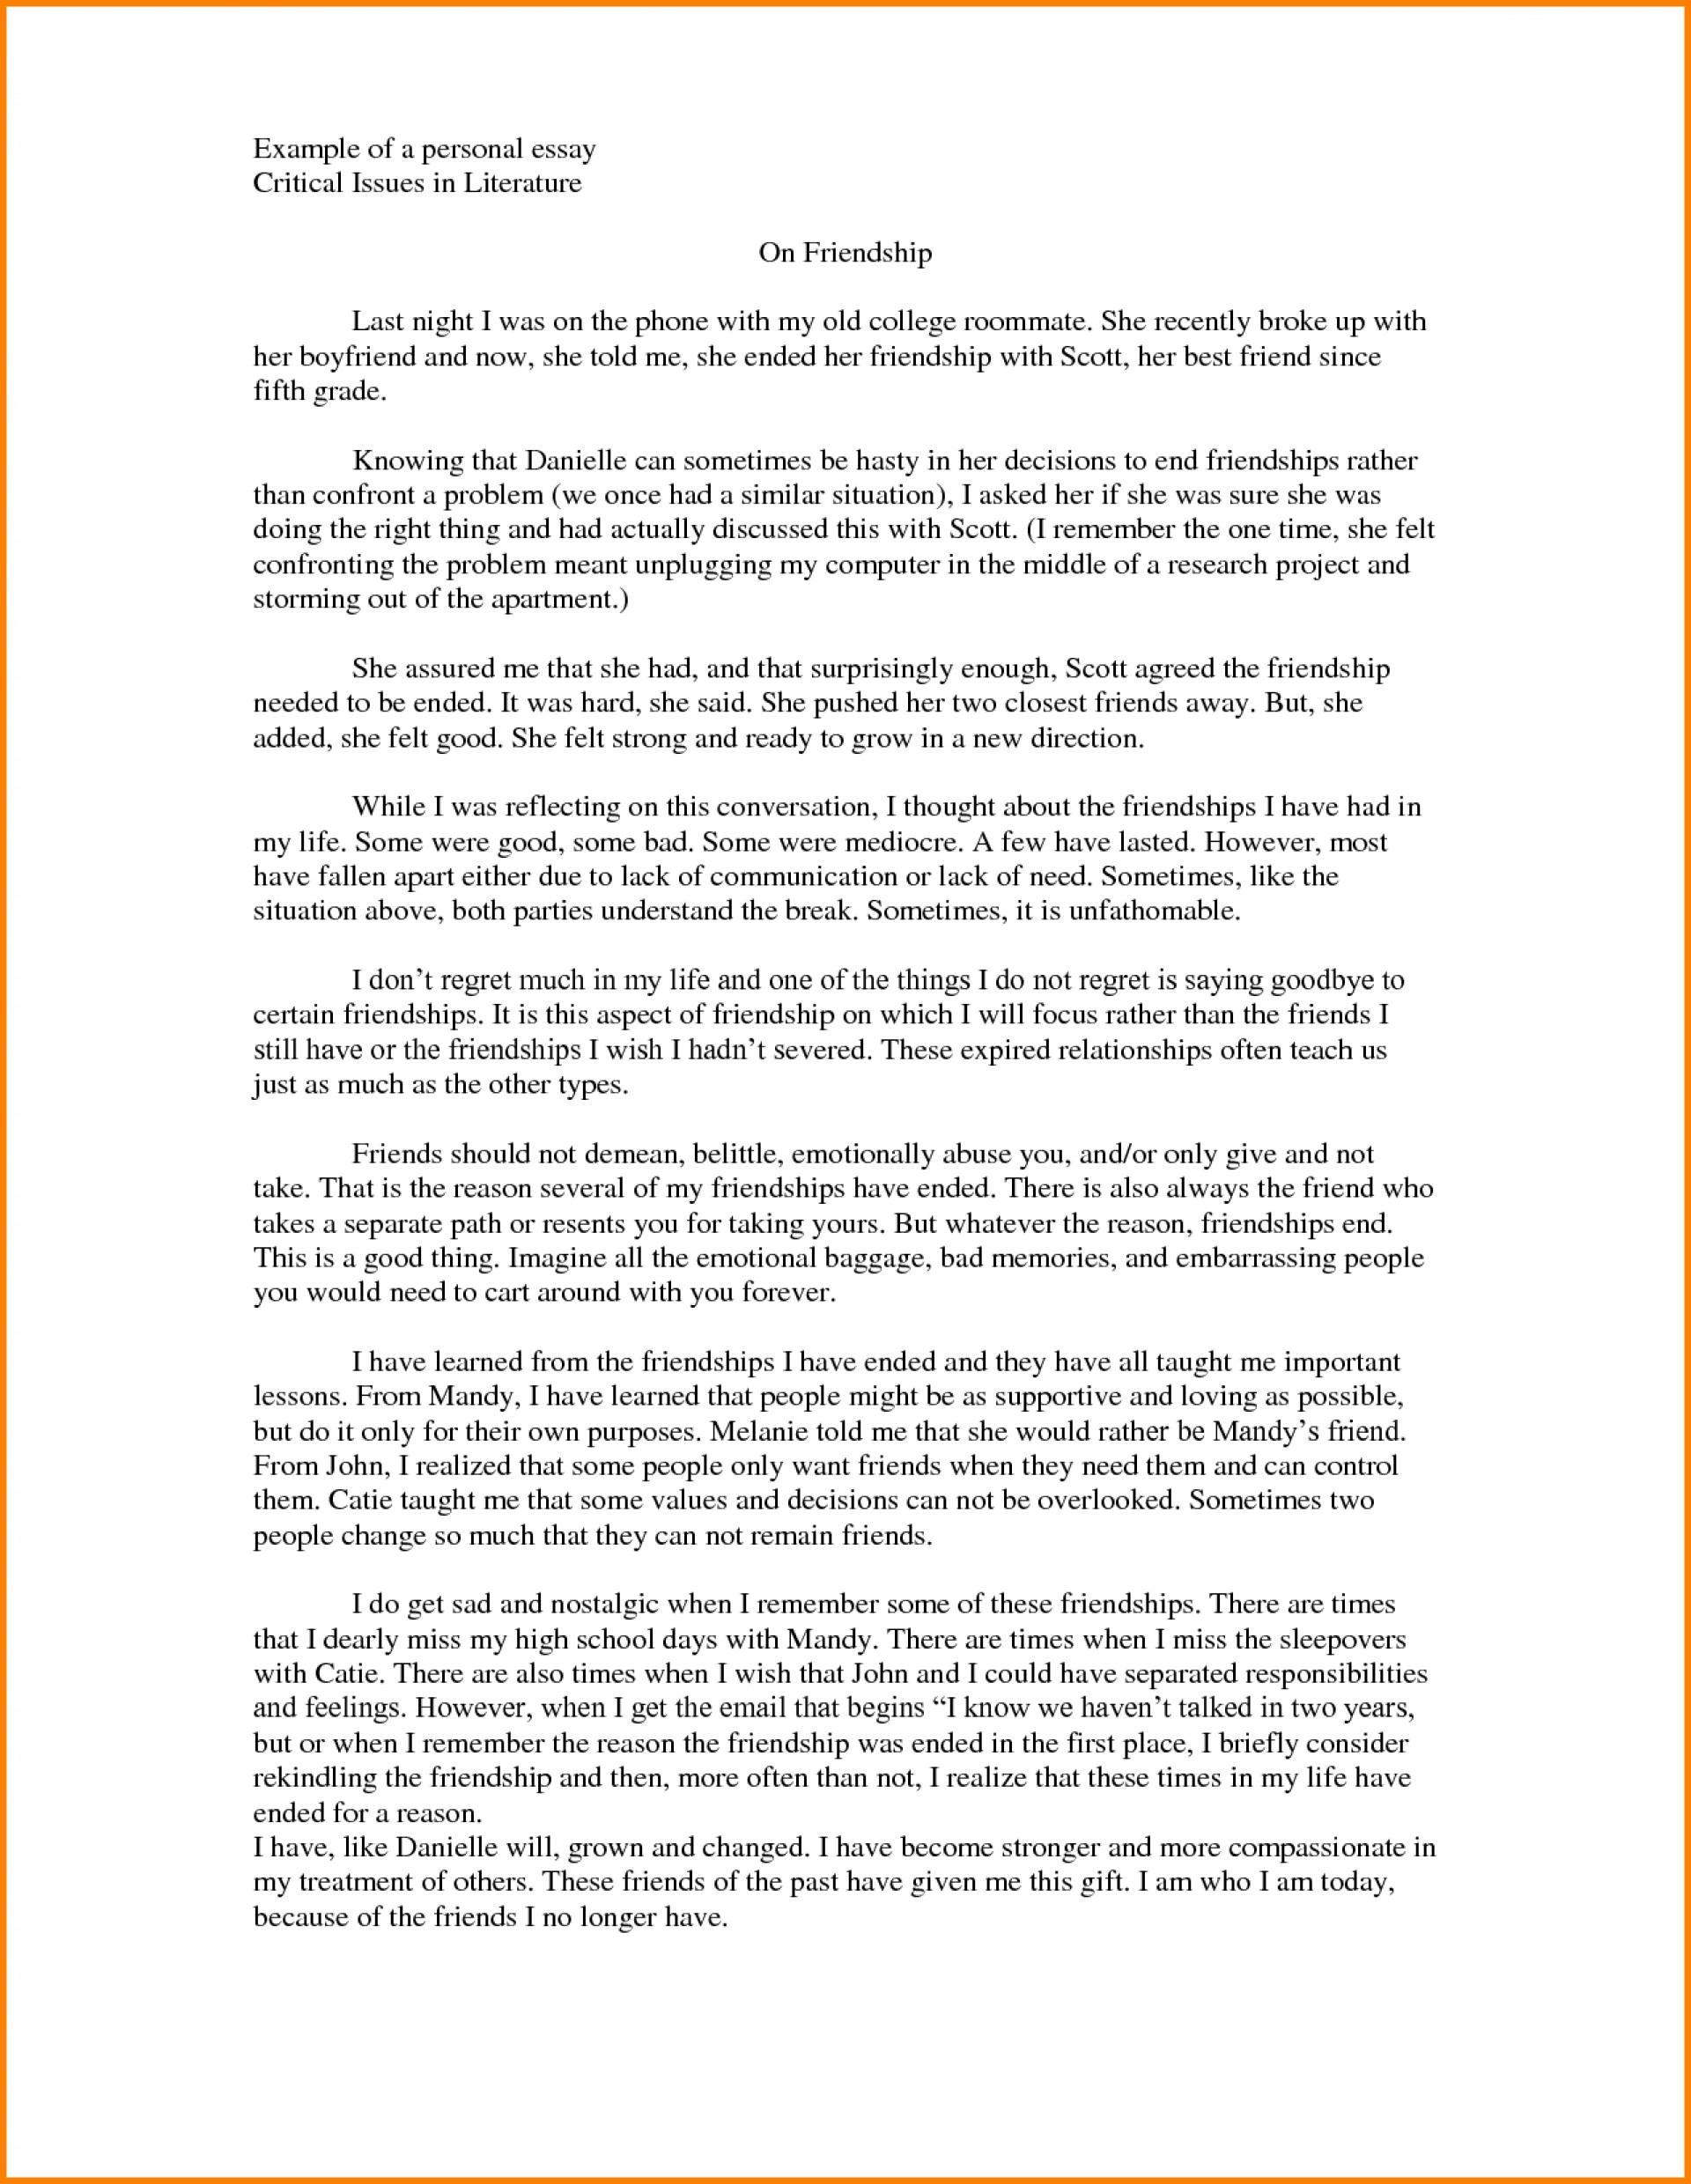 021 Best Of College Essay Samples Ivy League Resume Daily Sample Admission Essays Personal Statement L Tsi Excellent Outline Questions 1920